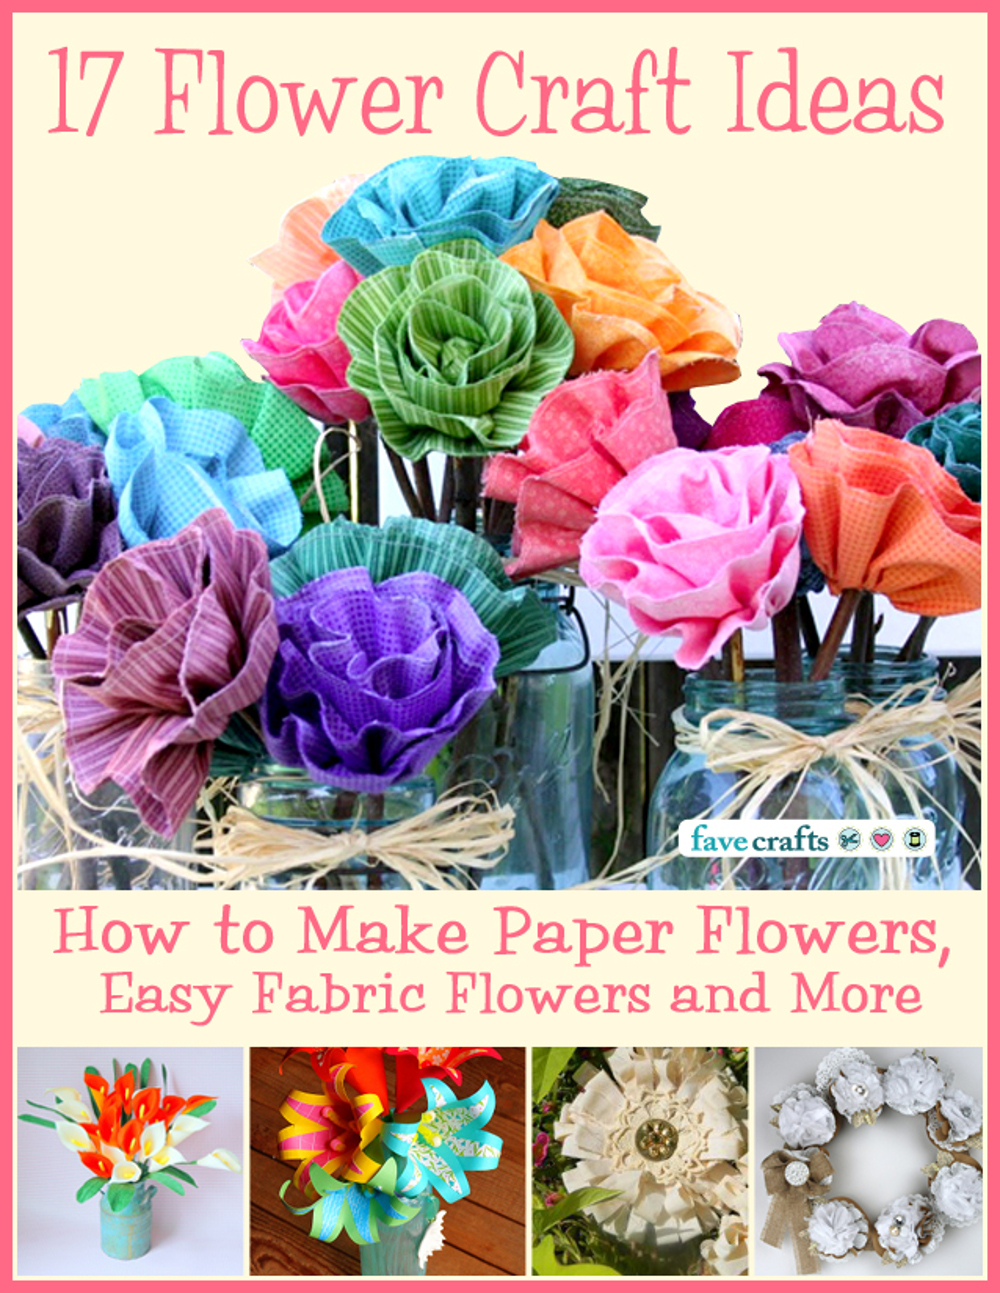 17 flower craft ideas how to make paper flowers easy fabric 17 flower craft ideas how to make paper flowers easy fabric flowers and more free ebook favecrafts jeuxipadfo Choice Image